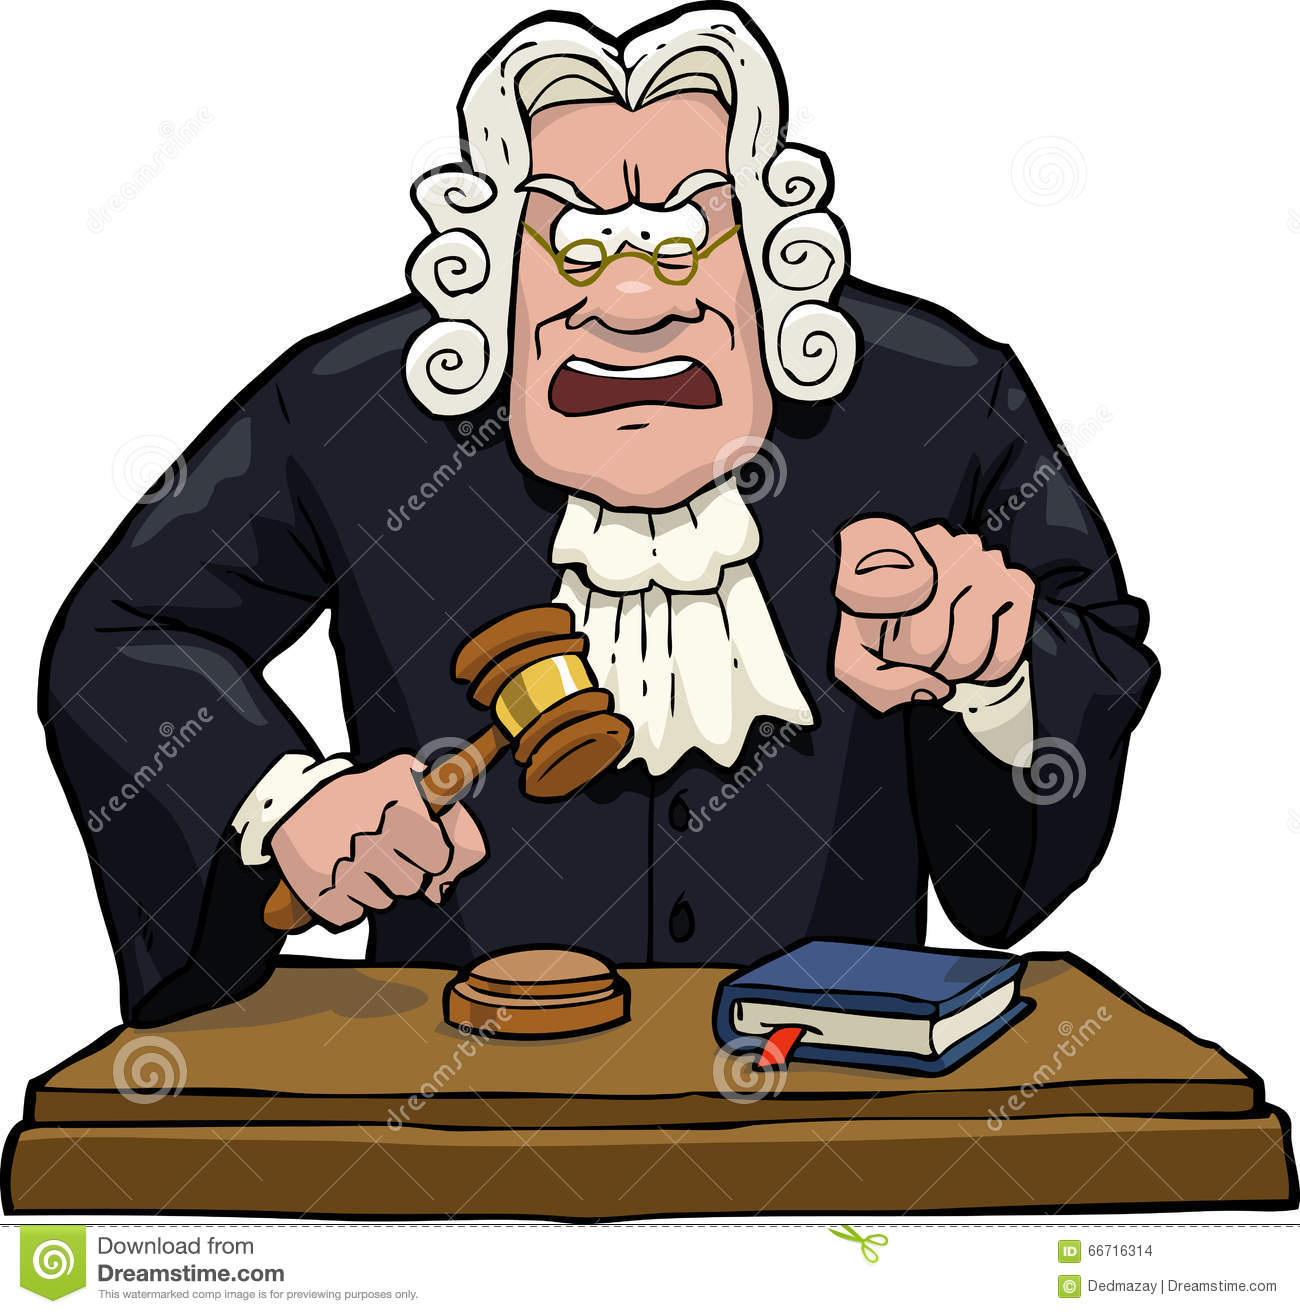 Cartoon judge accuses on a white background illustration.